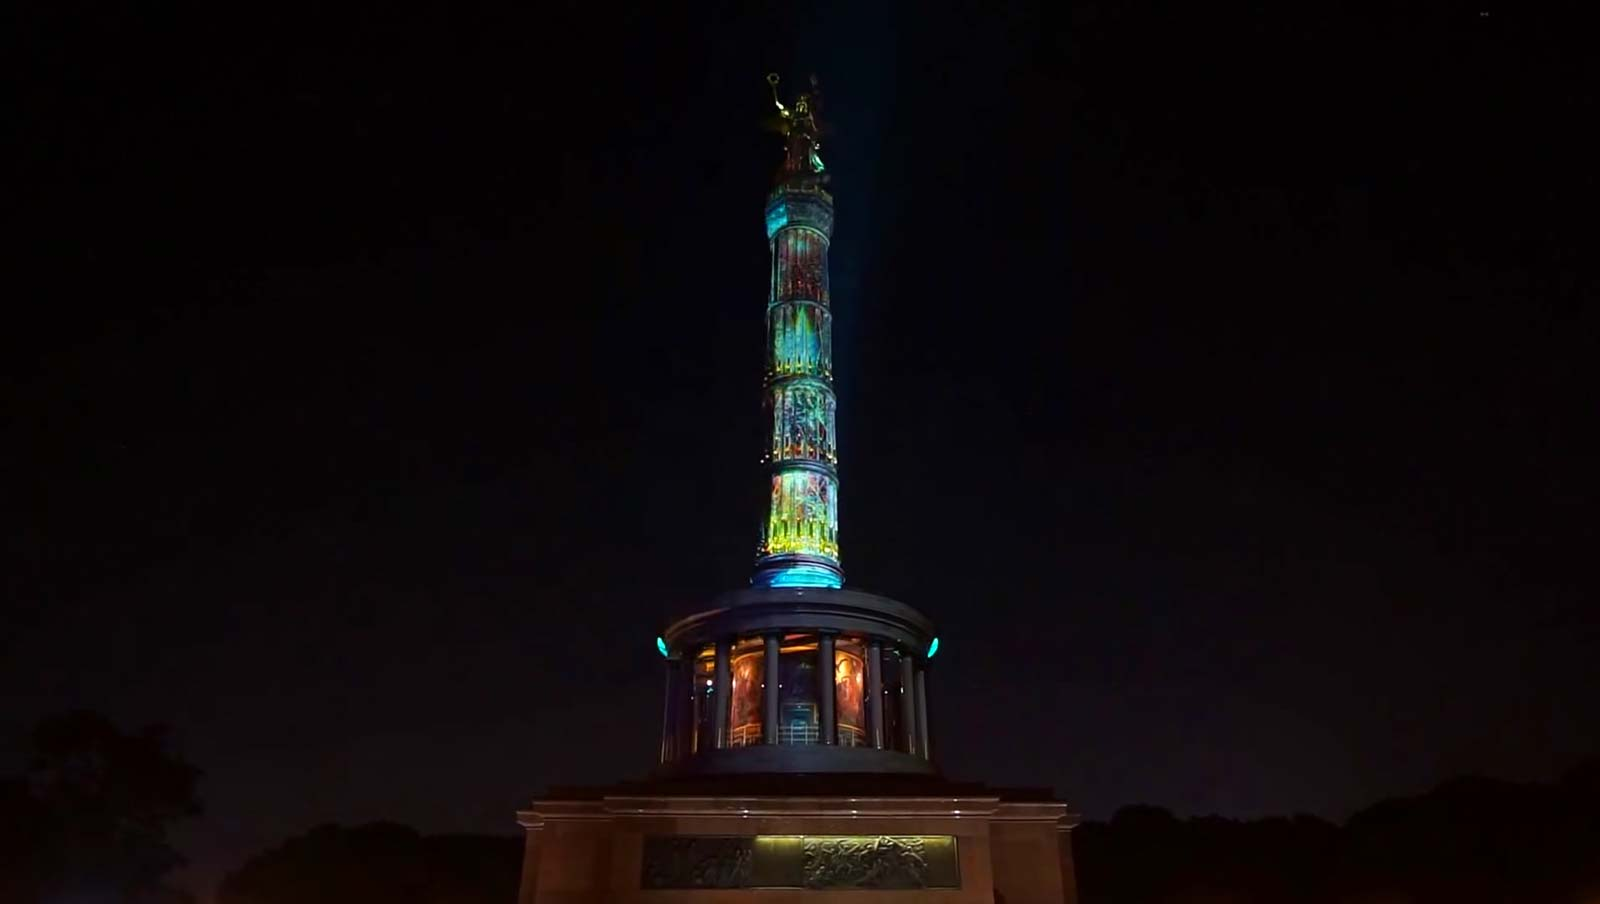 Festival of Lights 2015 Video Projektion Siegessäule